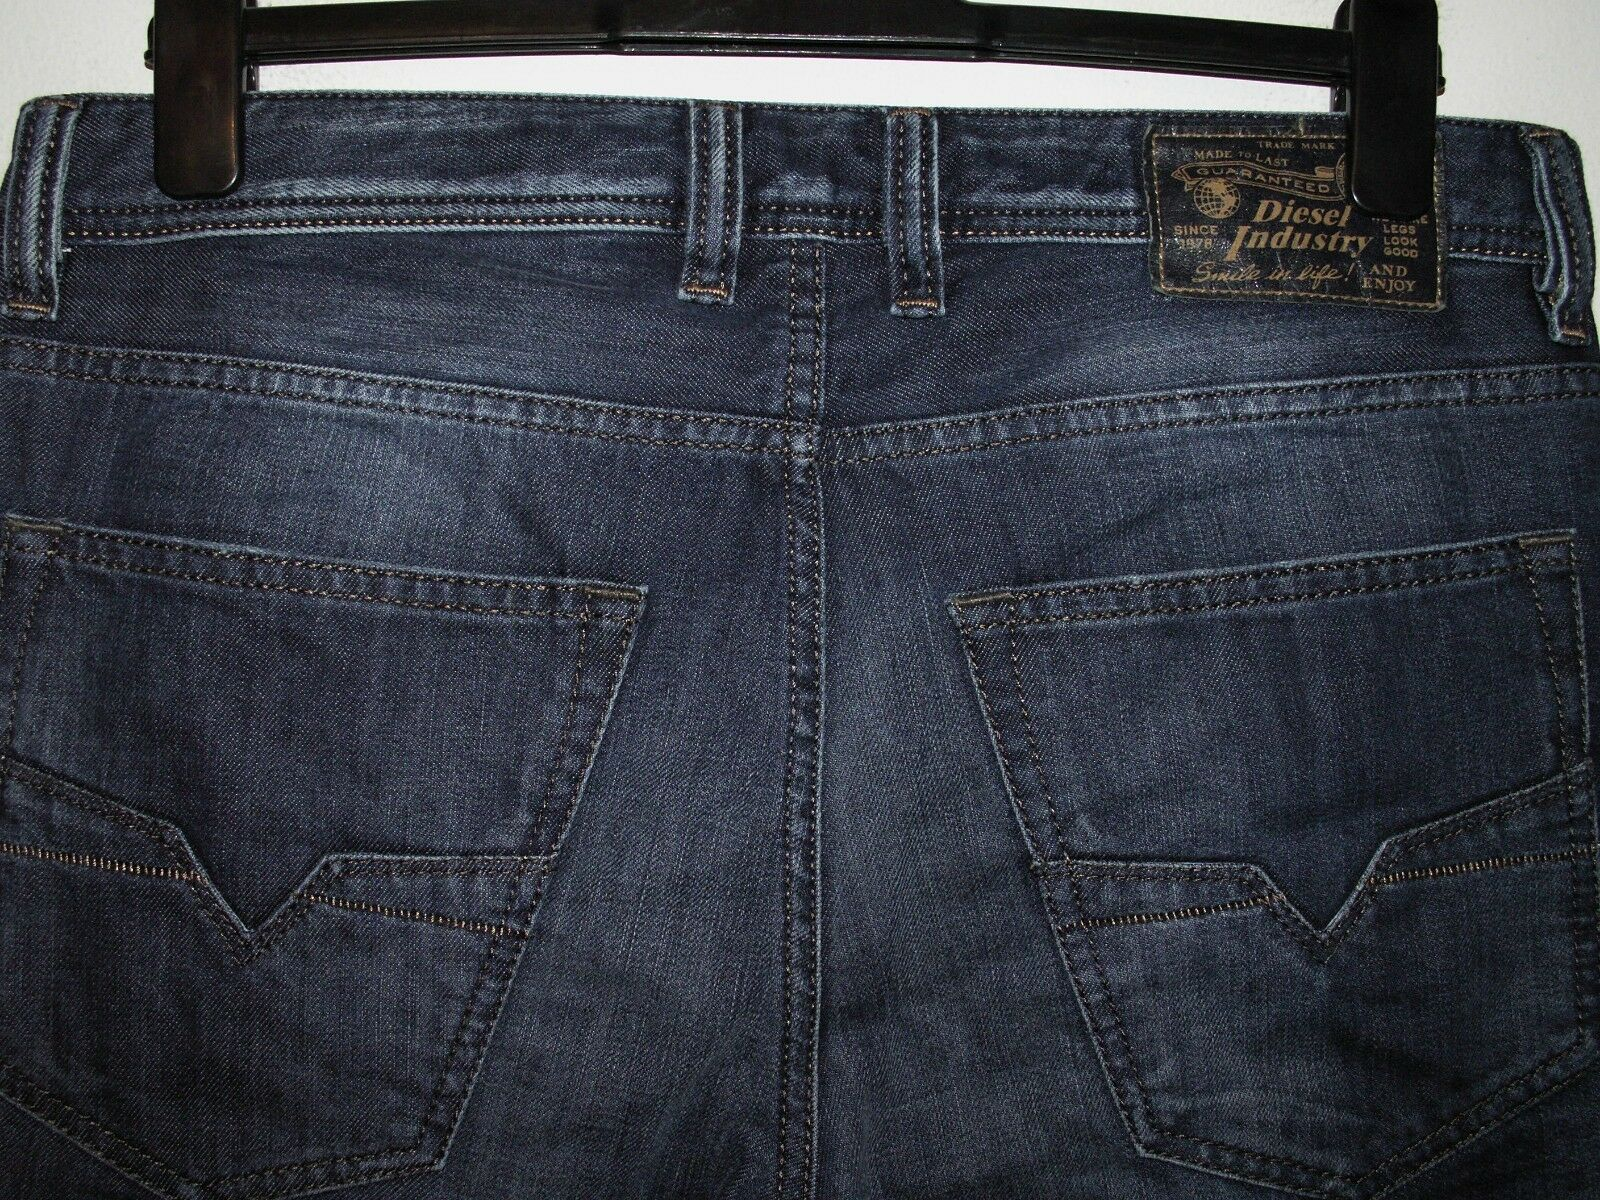 Diesel larkee-relaxed comfort-straight jeans 833N W32 L30 a3449 129.99 now 89.99